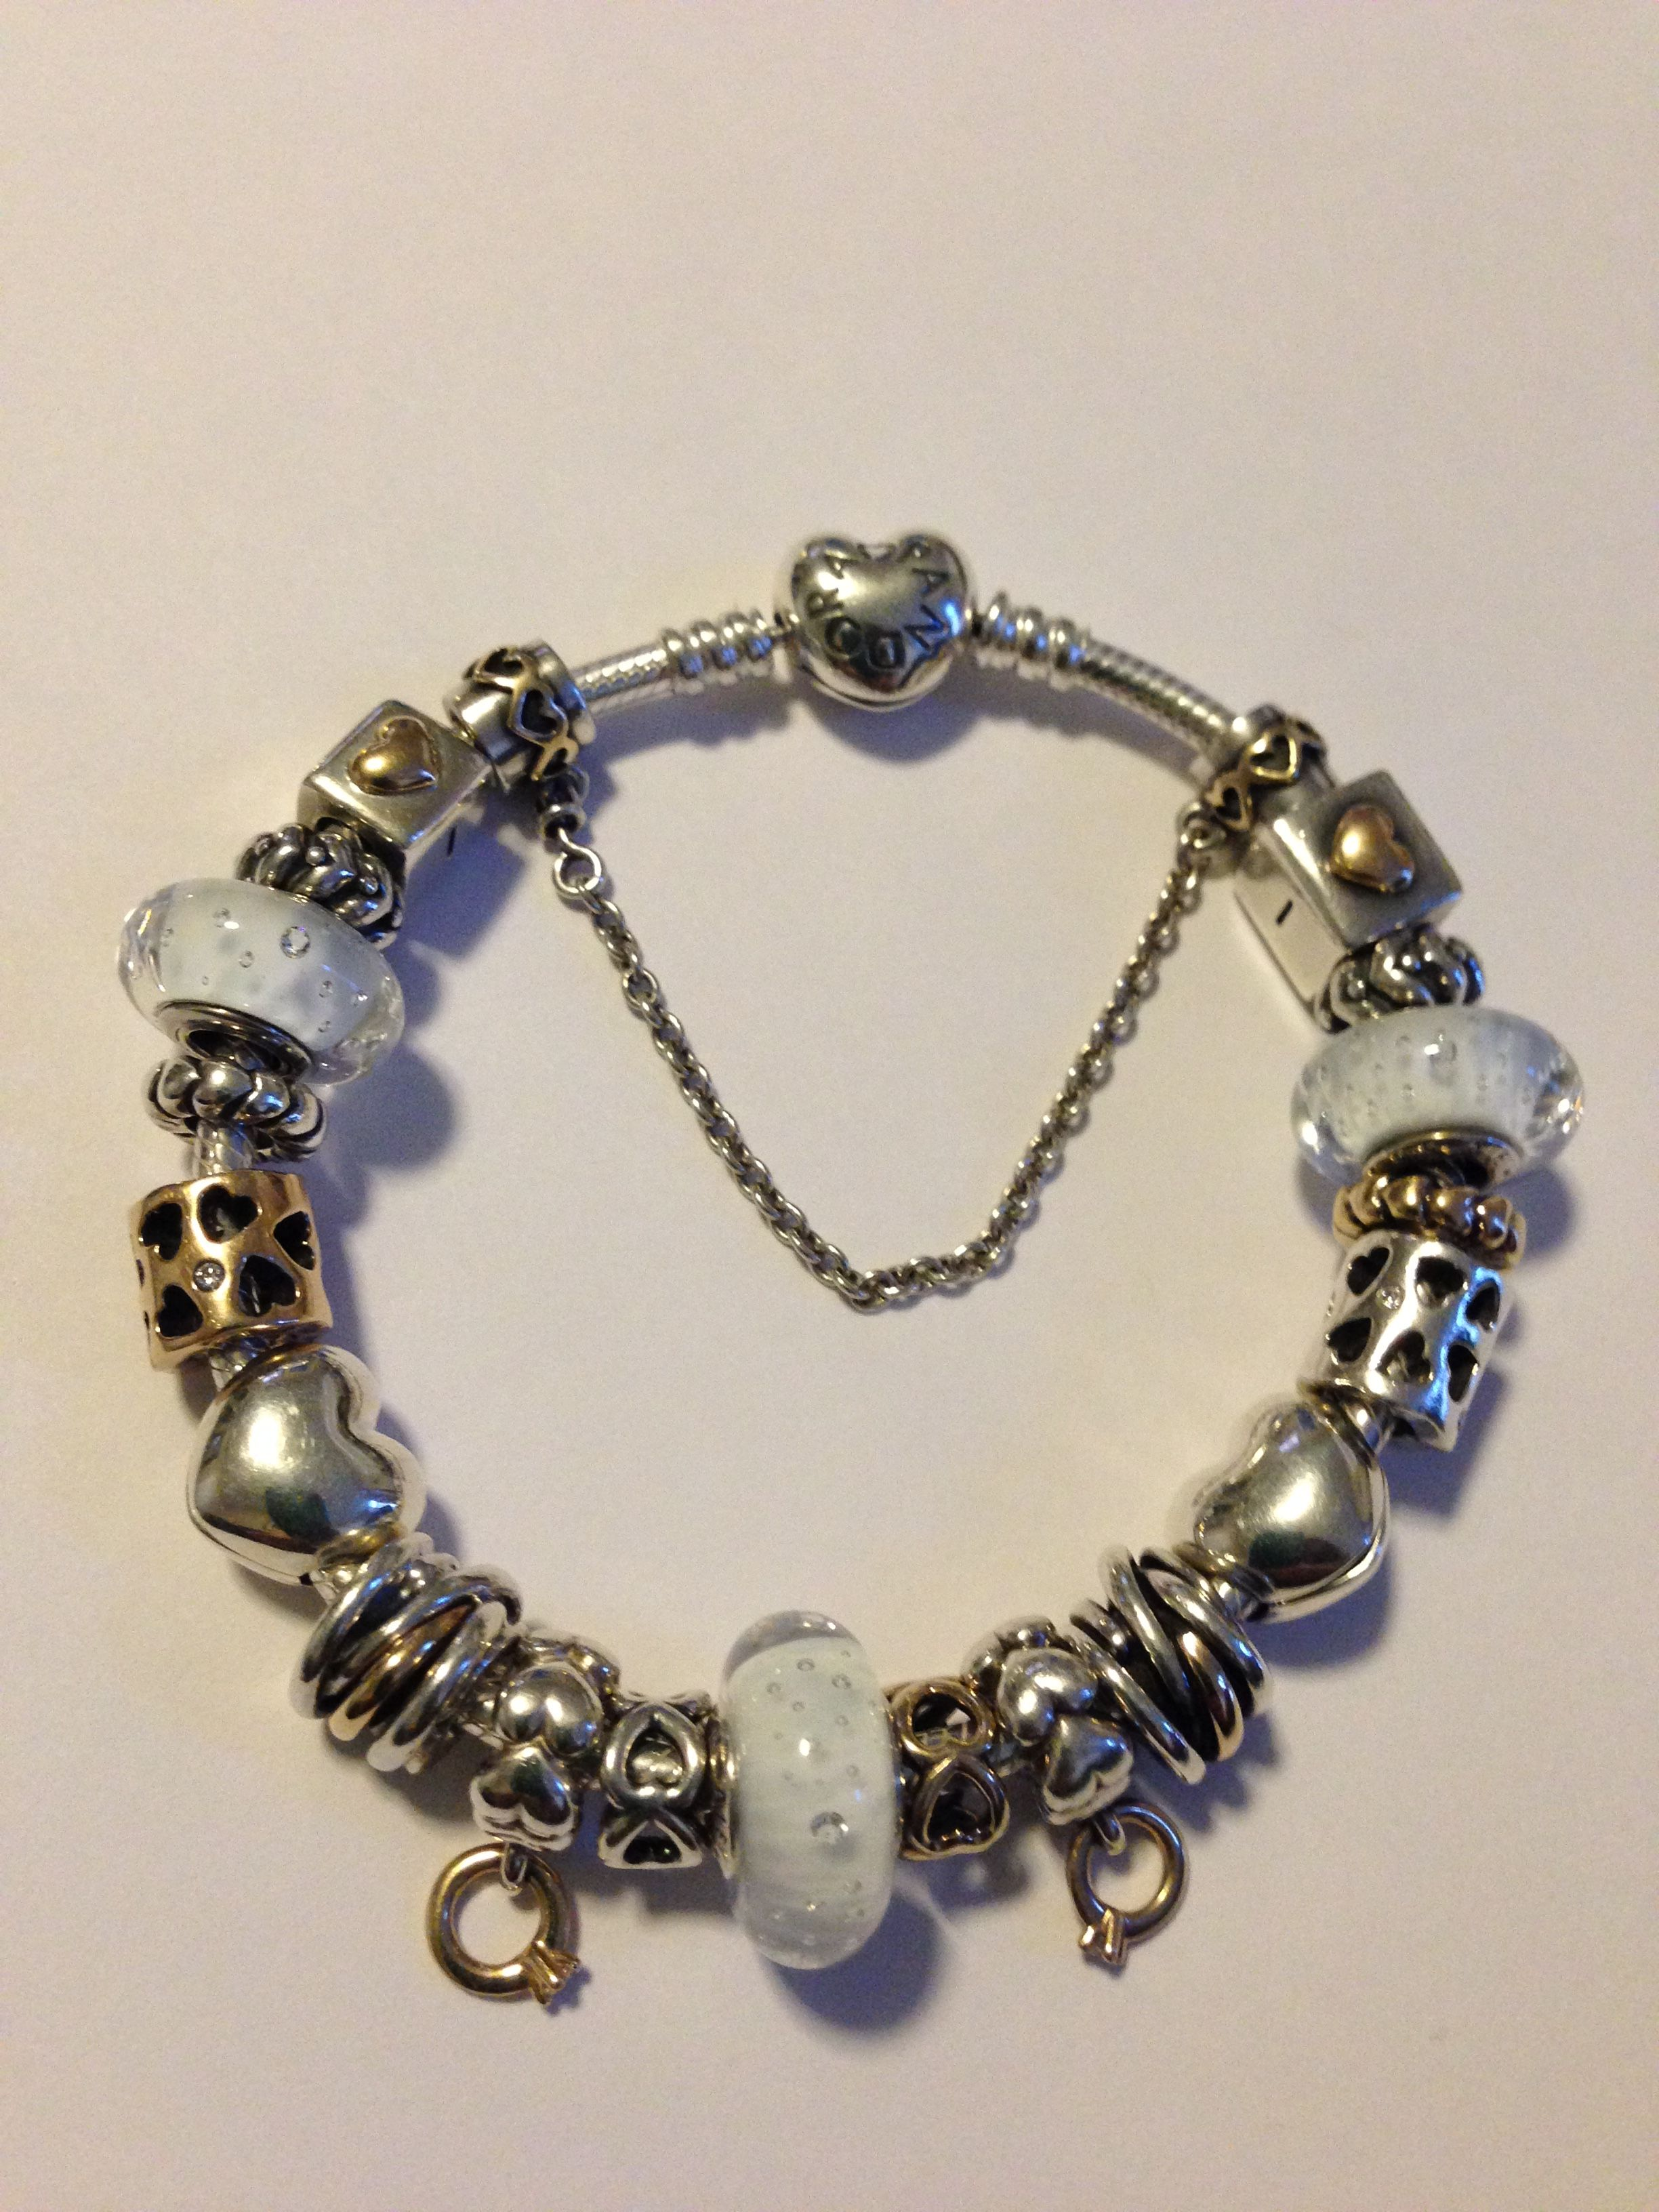 ac95d4dd3 My hearts and love, clear effervescence Murano glass charms Pandora bracelet.  by Nicole